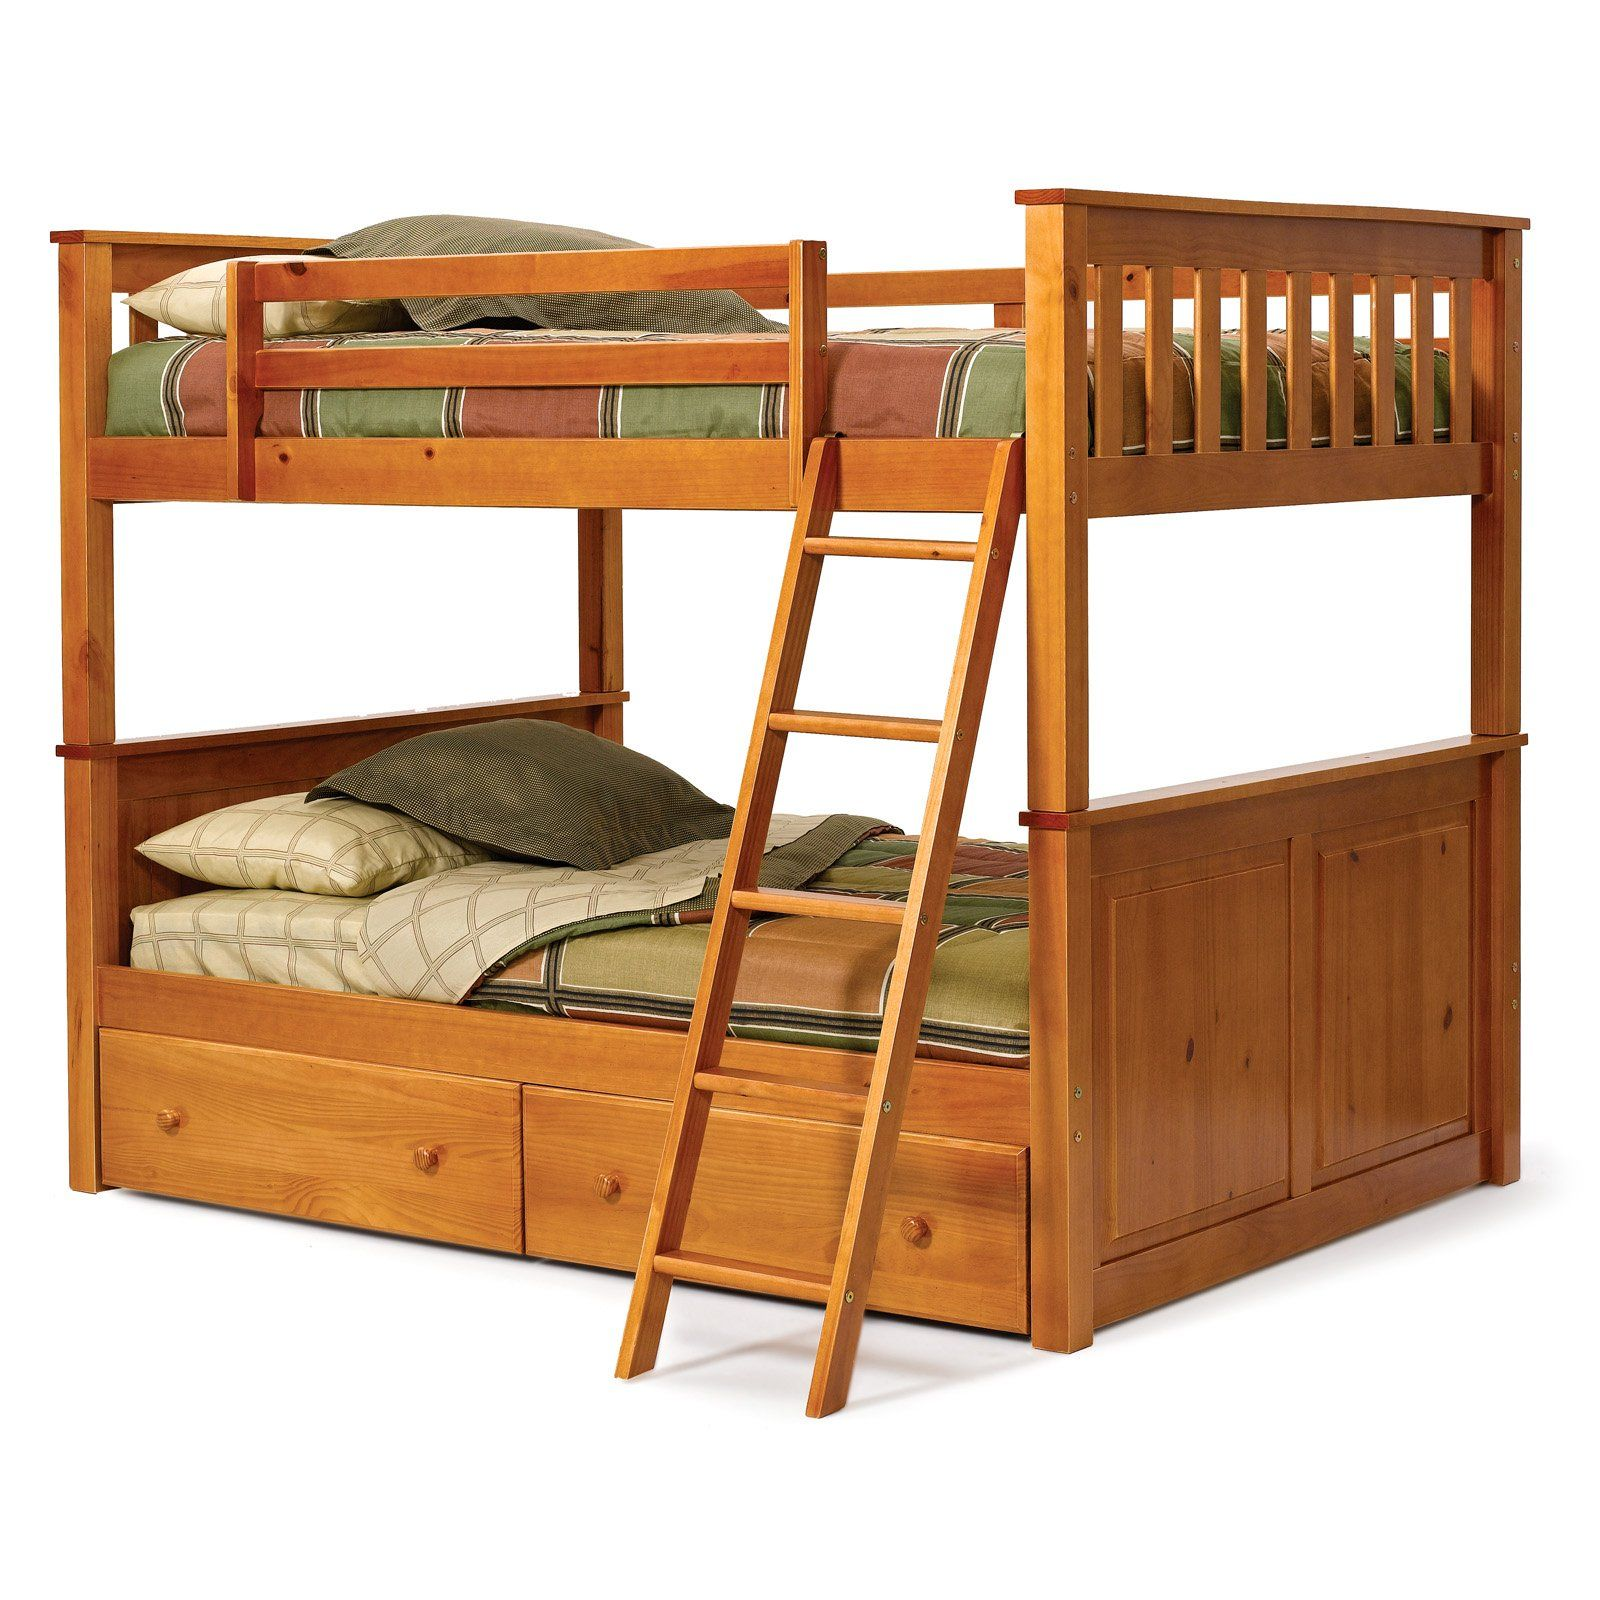 Double loft bed ideas  Have to have it Pine Ridge Honey Pine Full over Full Bunk Bed